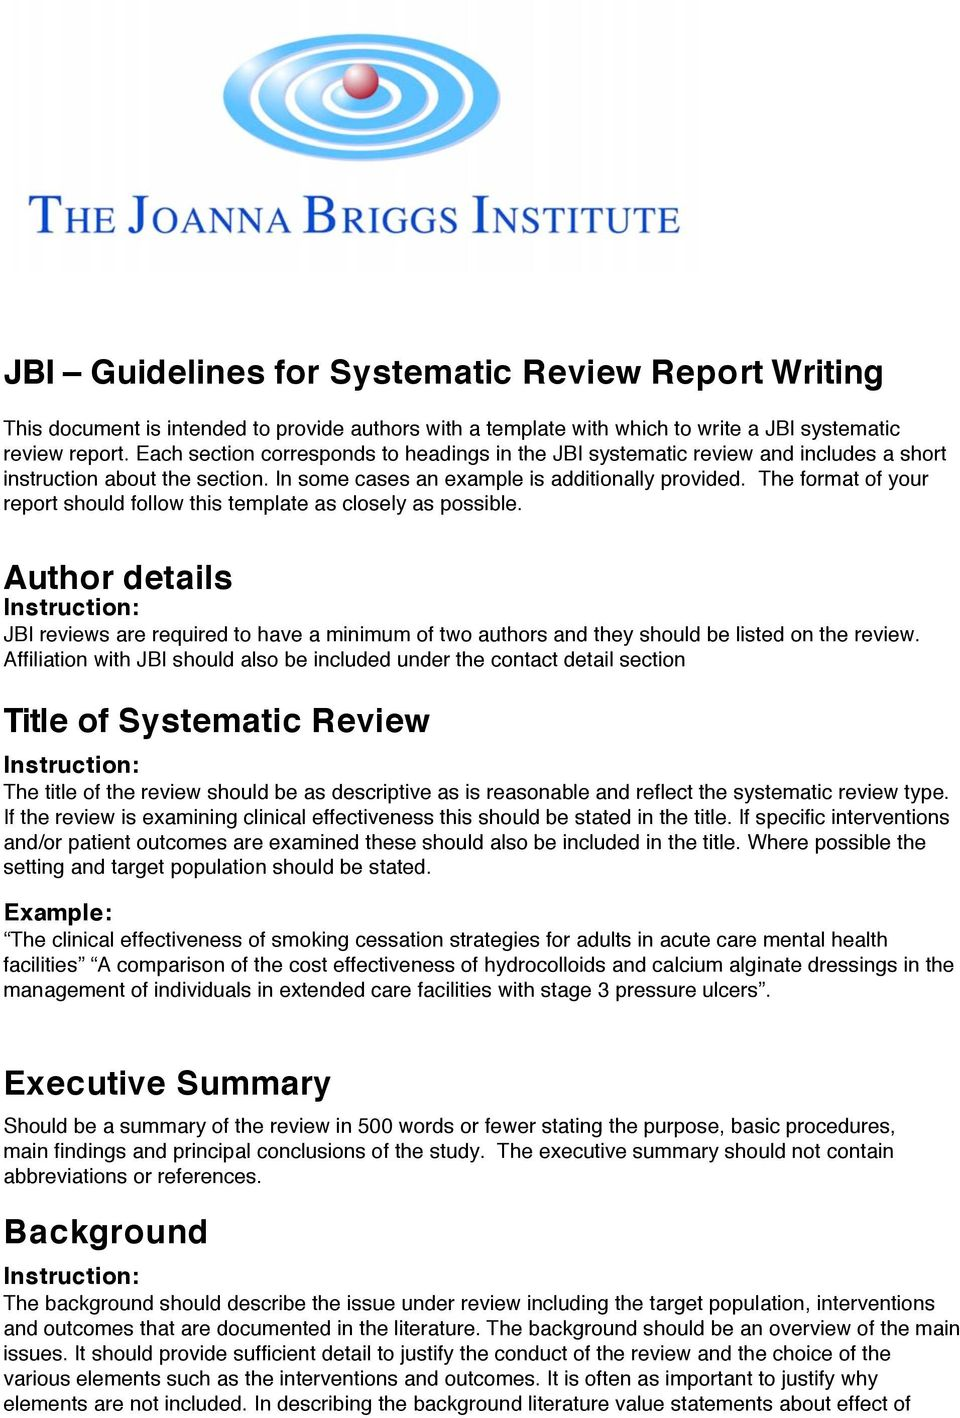 JBI Guidelines for Systematic Review Report Writing - PDF